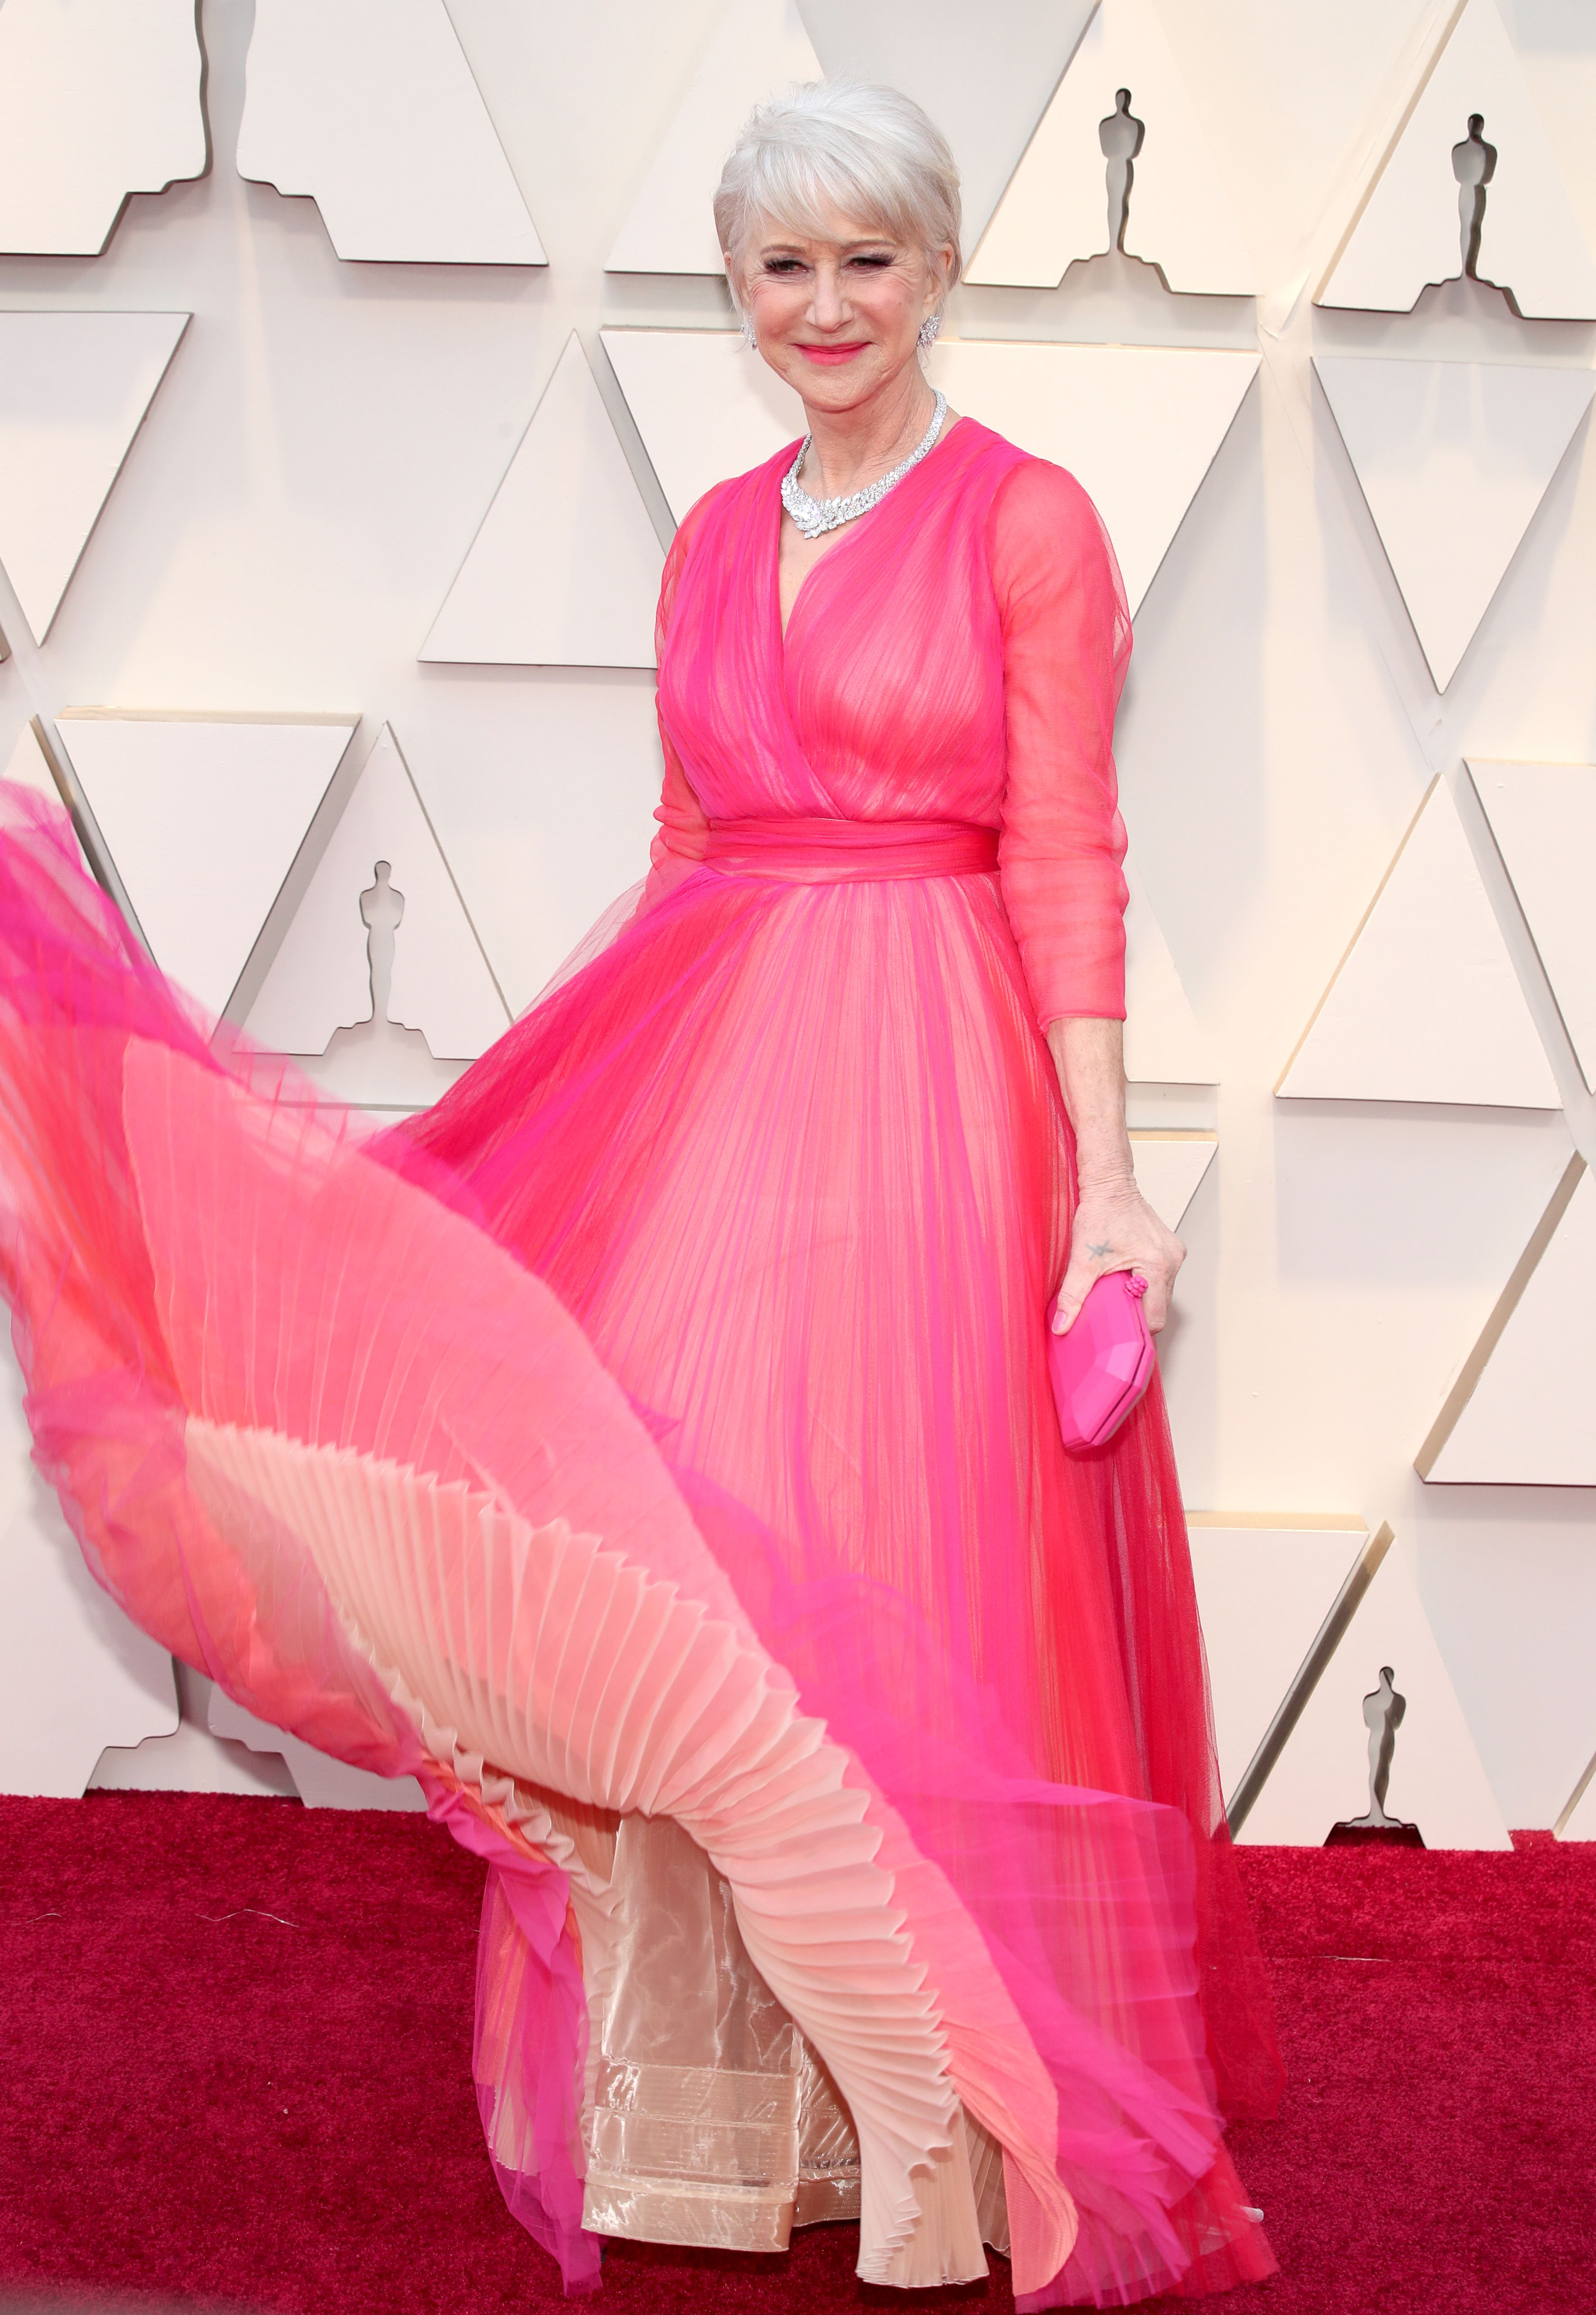 Mandatory Credit: Photo by Christopher Polk/REX/Shutterstock (10113255gv) Helen Mirren 91st Annual Academy Awards, Arrivals, Los Angeles, USA - 24 Feb 2019